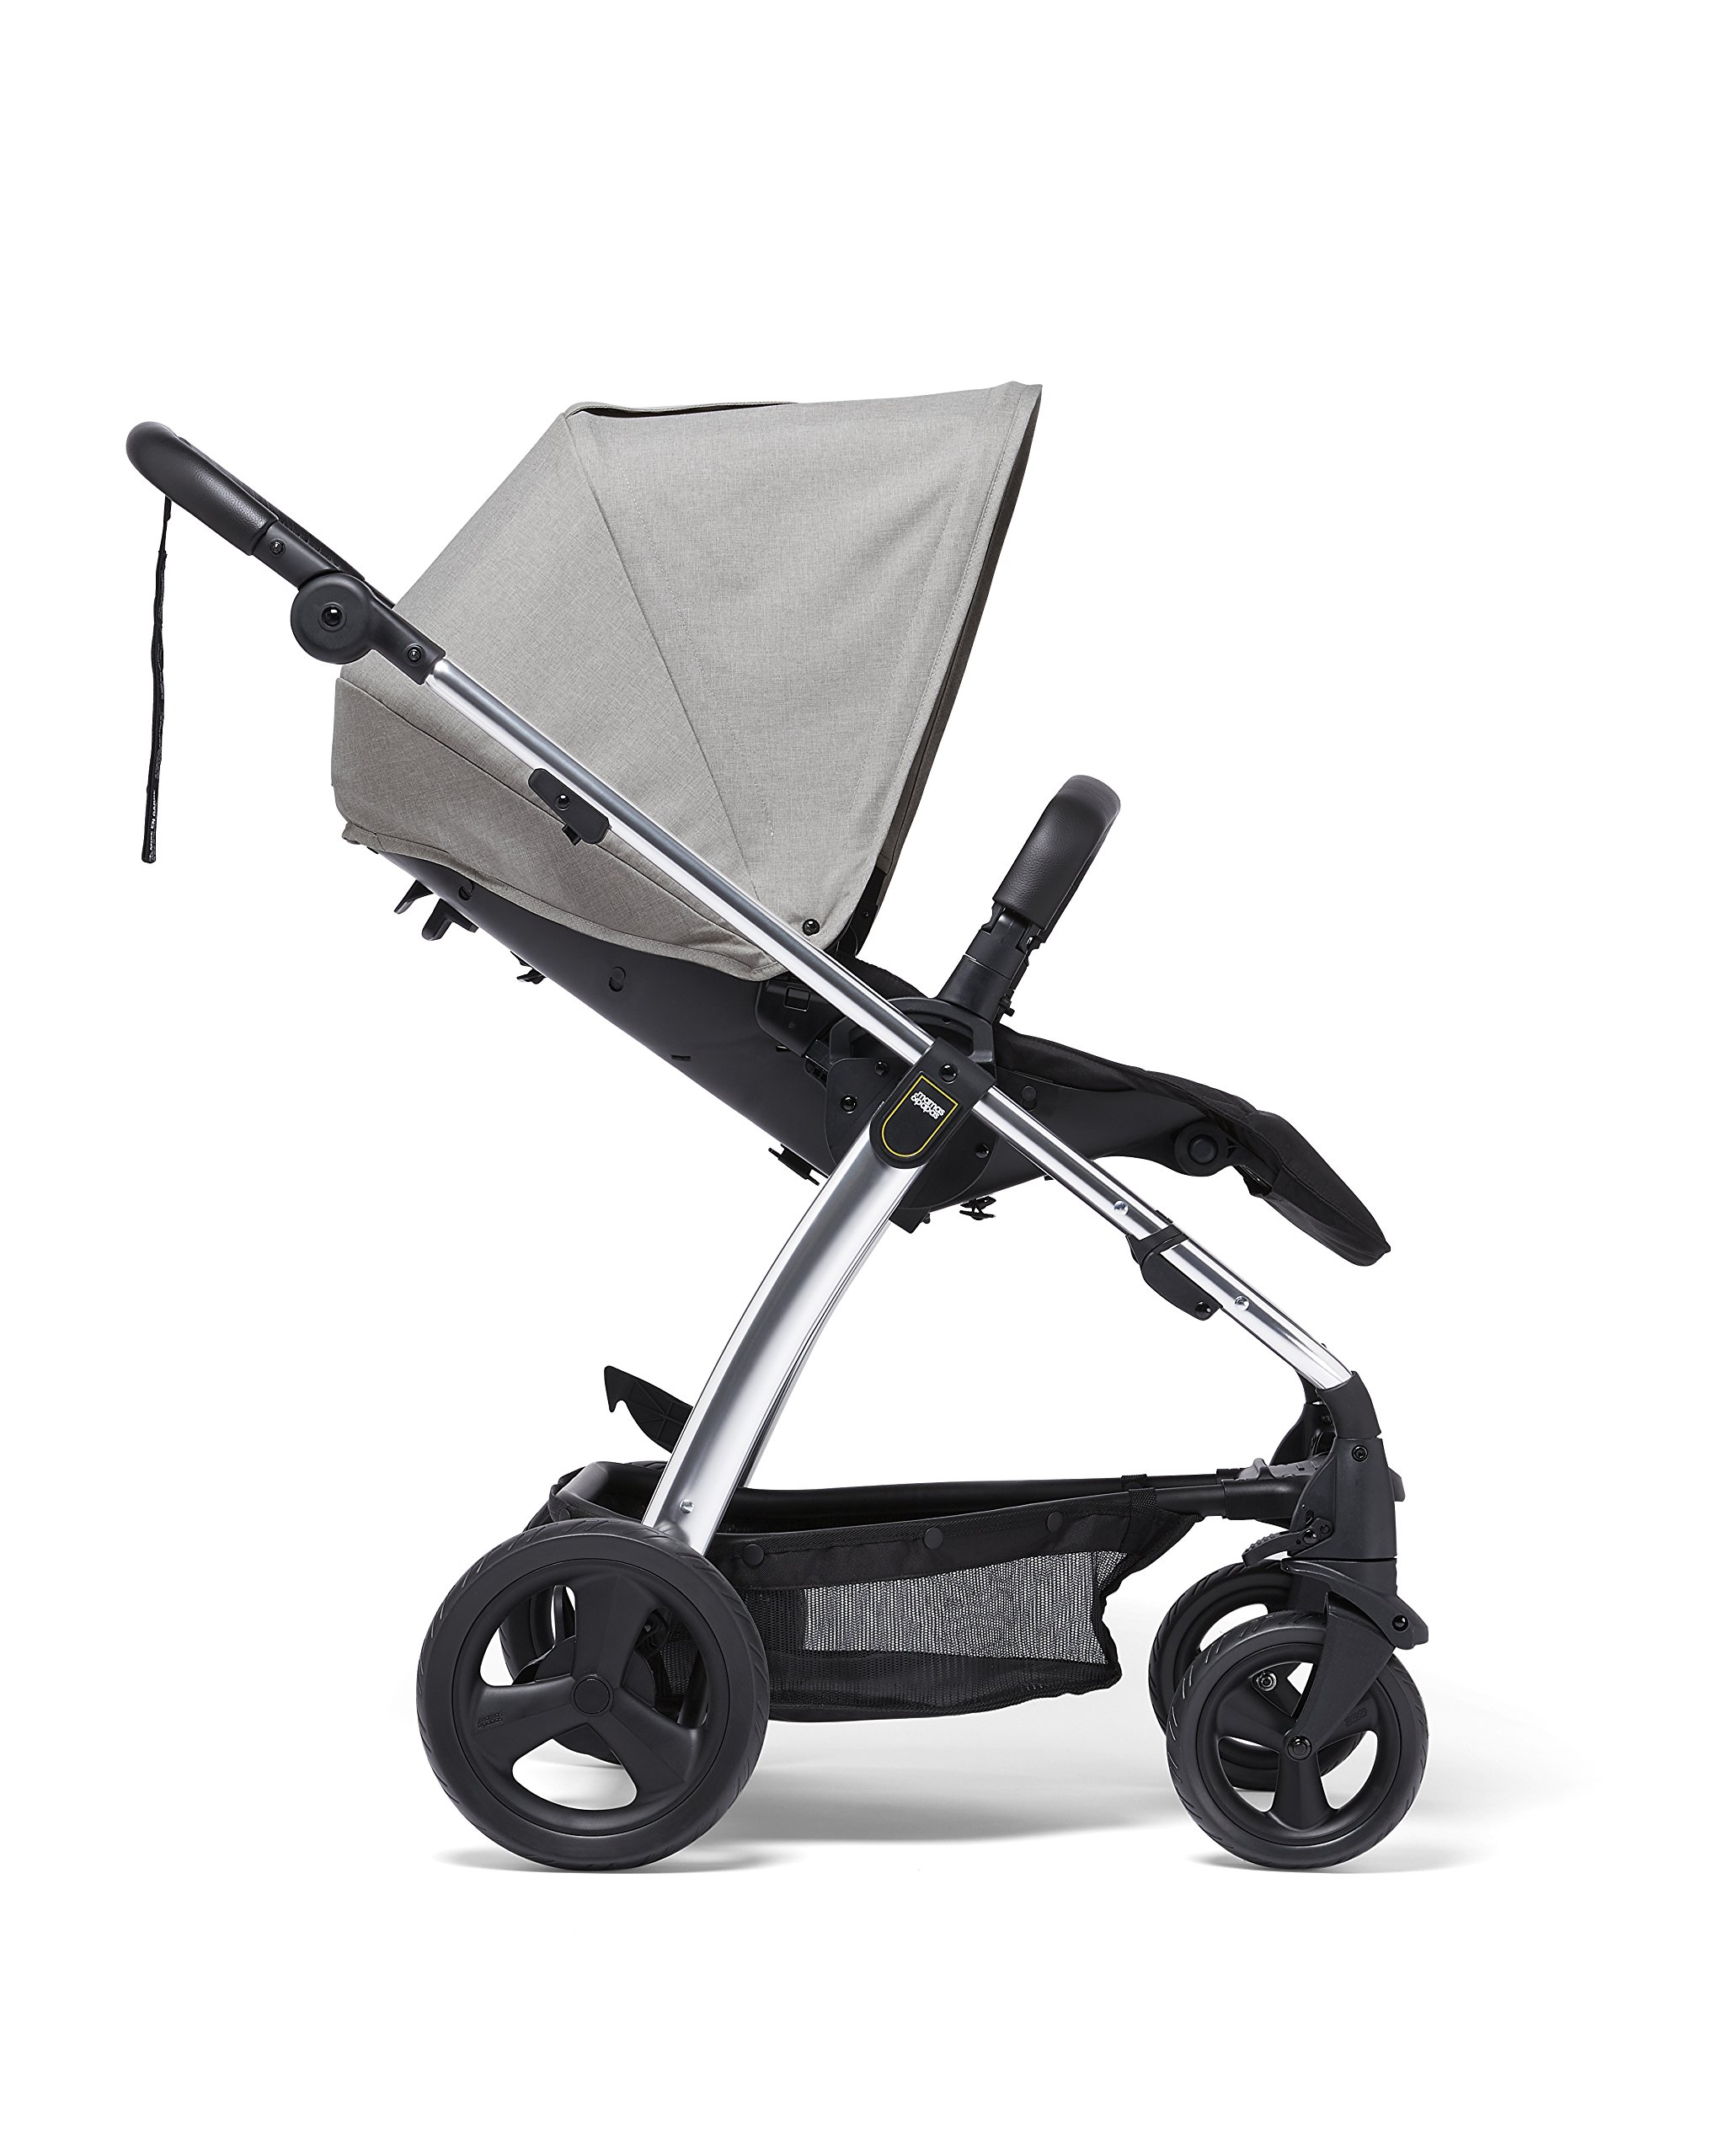 Mamas & Papas Sola² Lightweight Pushchair with Dual Position Seat, Compact Fold & Dual Suspension Wheels - Light Grey Mamas & Papas Great stearability - front and rear suspension wheels ensure a smooth ride for baby's travels. The wheels are also lockable for your peace of mind Large canopy - the large upf 50+ hood protects against harmful rays and a magnetic window lets you check on baby. Attach the included rain cover for drizzly days Dual position - baby can face you or the world to suit them. Adjust the seat to the lie-flat position for a comfortable space for your little one to sleep 2